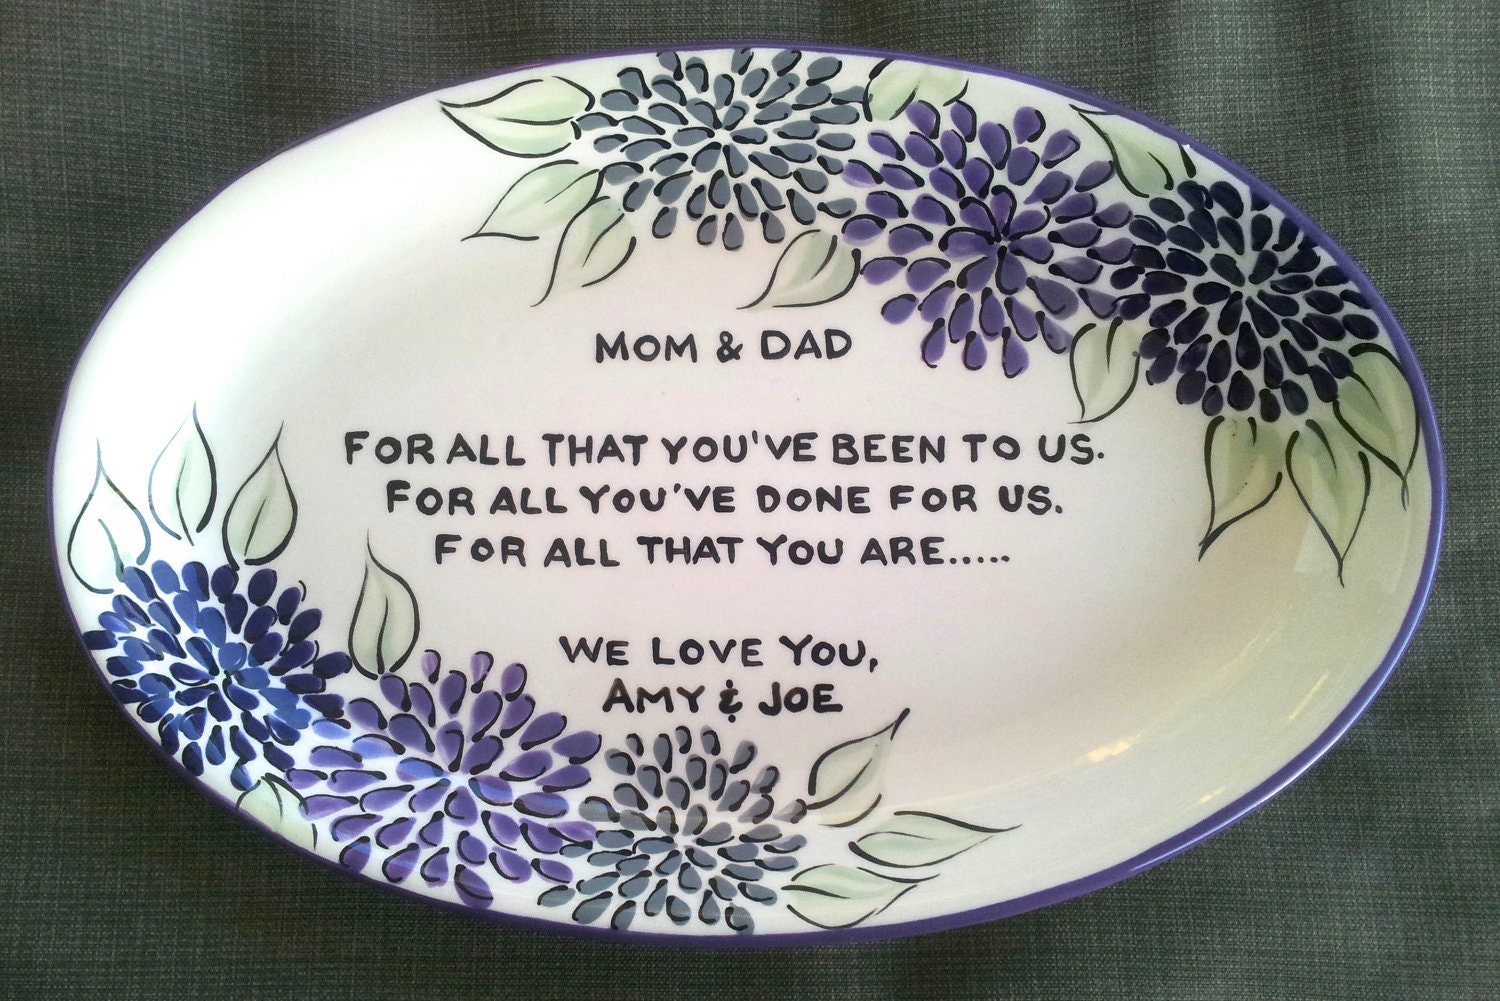 Marriage anniversary gifts for mom and dad ~ Mom dad thank you gift for parents on wedding day from